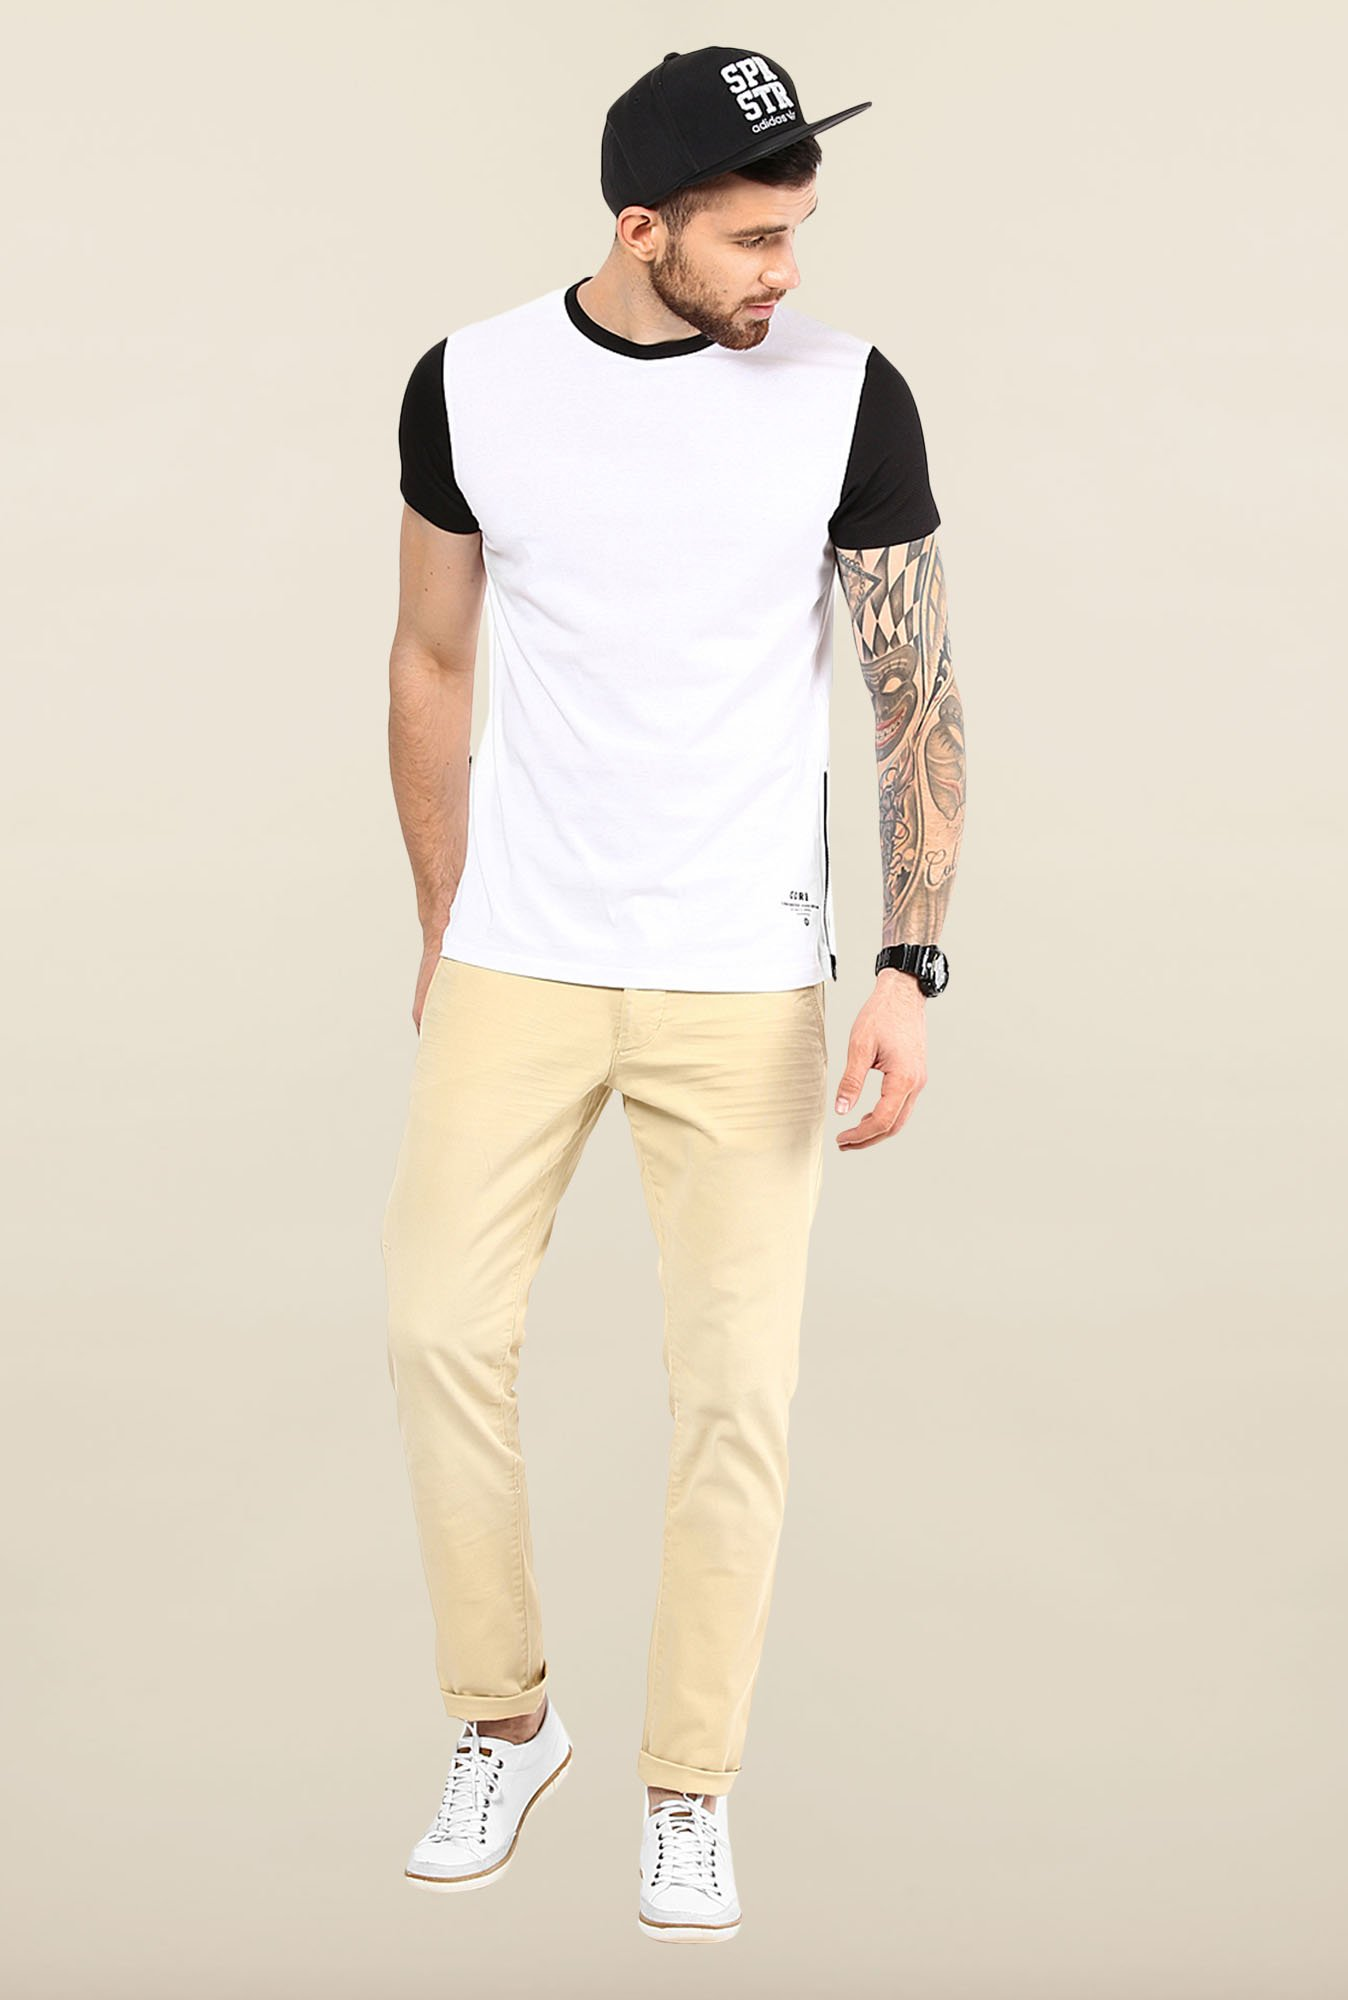 Jack & Jones White Solid Crew Neck T-Shirt